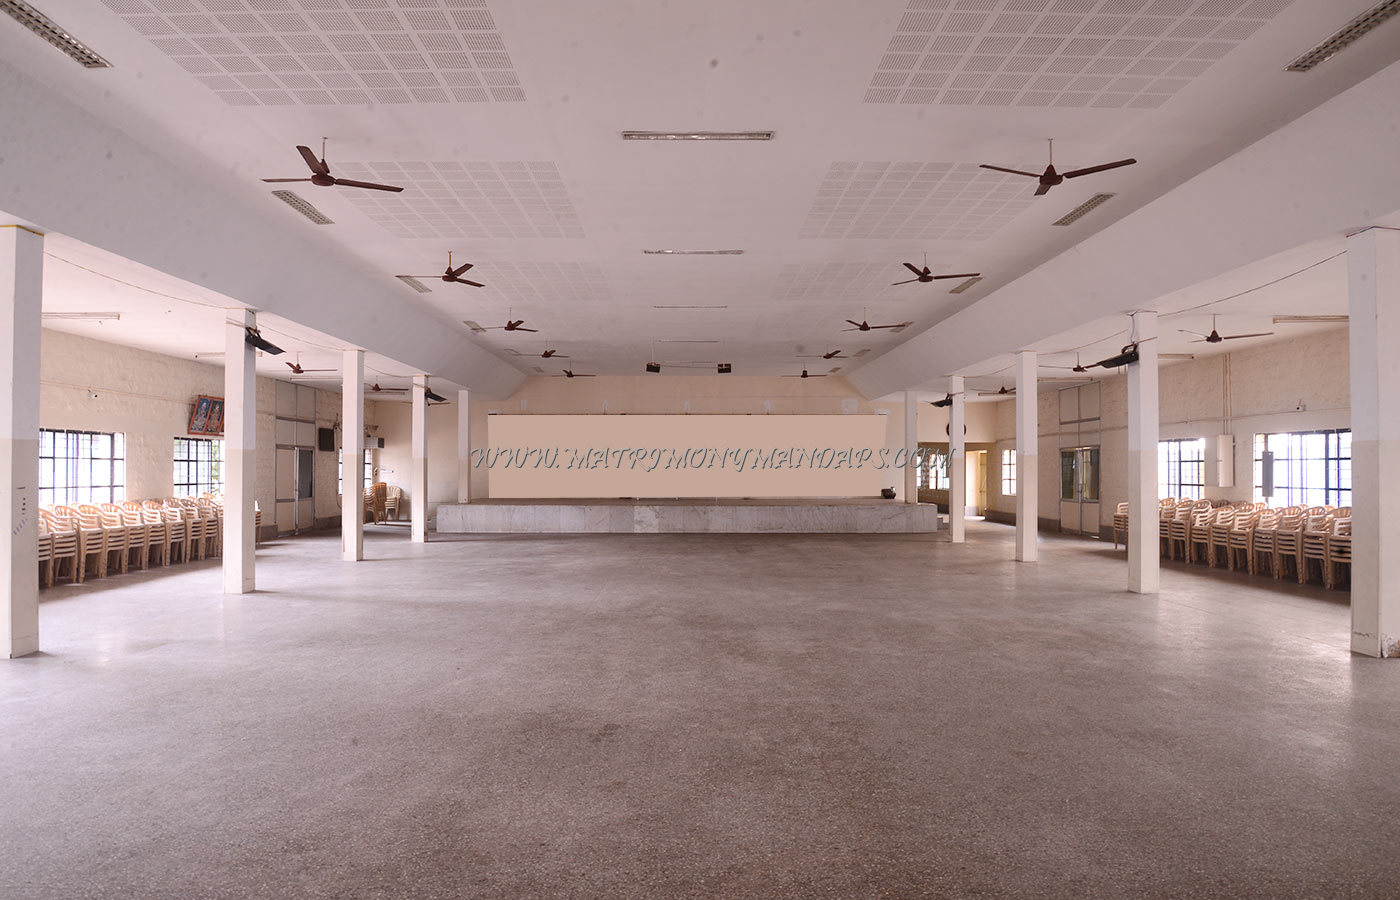 Find the availability of the Ramasamy Kalyana Mandapam in Kavundampalayam, Coimbatore and avail special offers